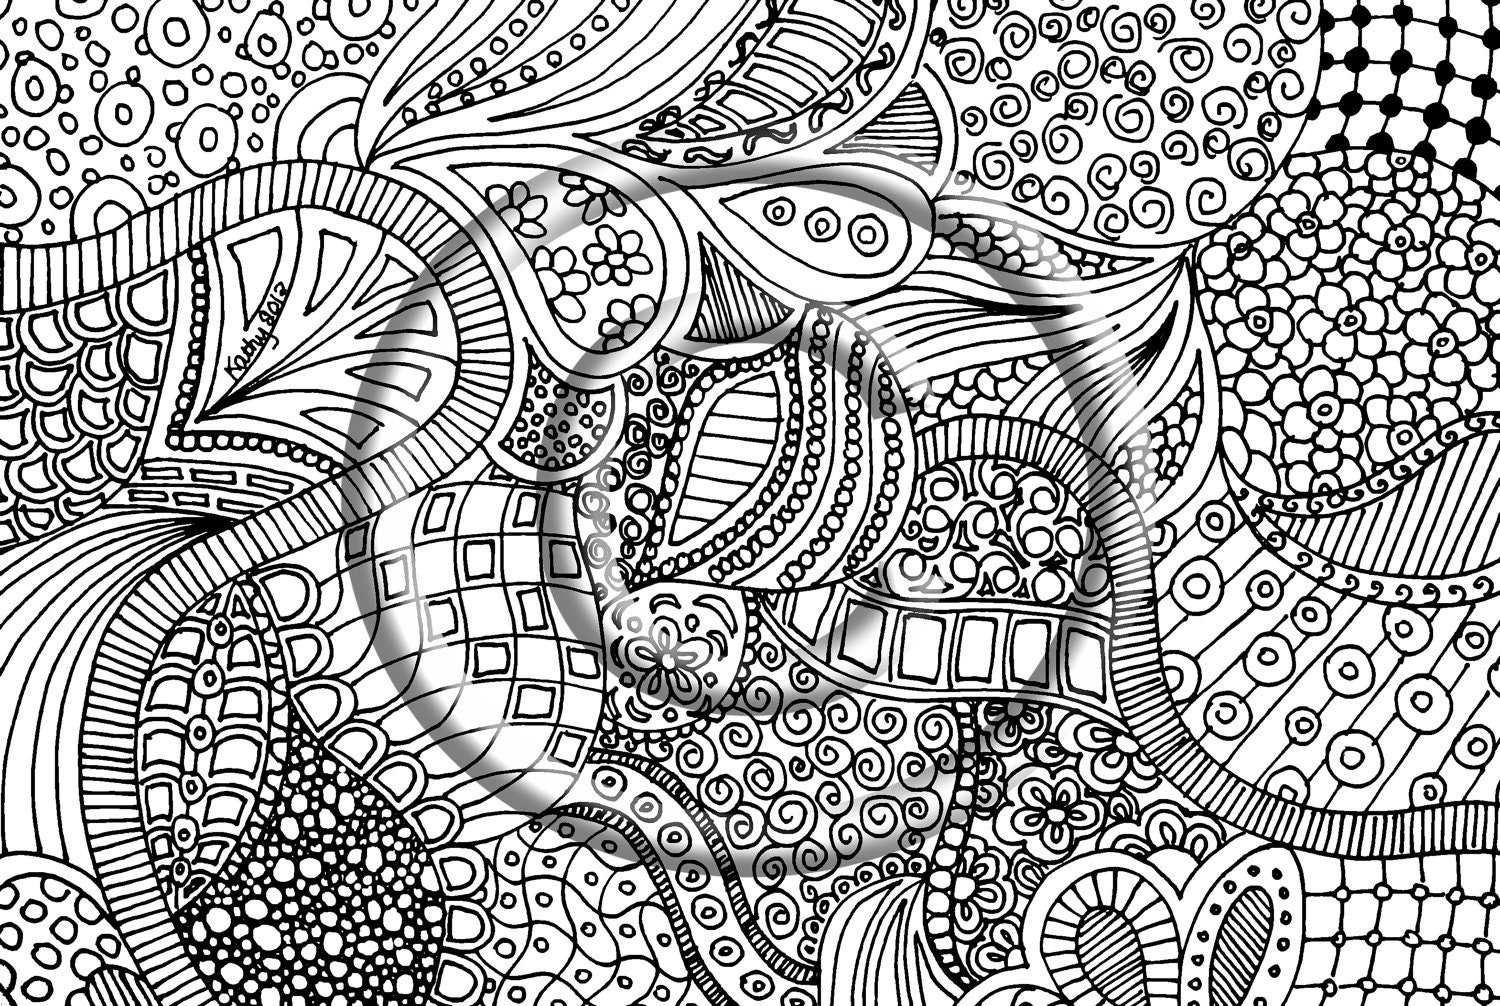 Zentangle Free Colouring Pages Zentangle Coloring Page